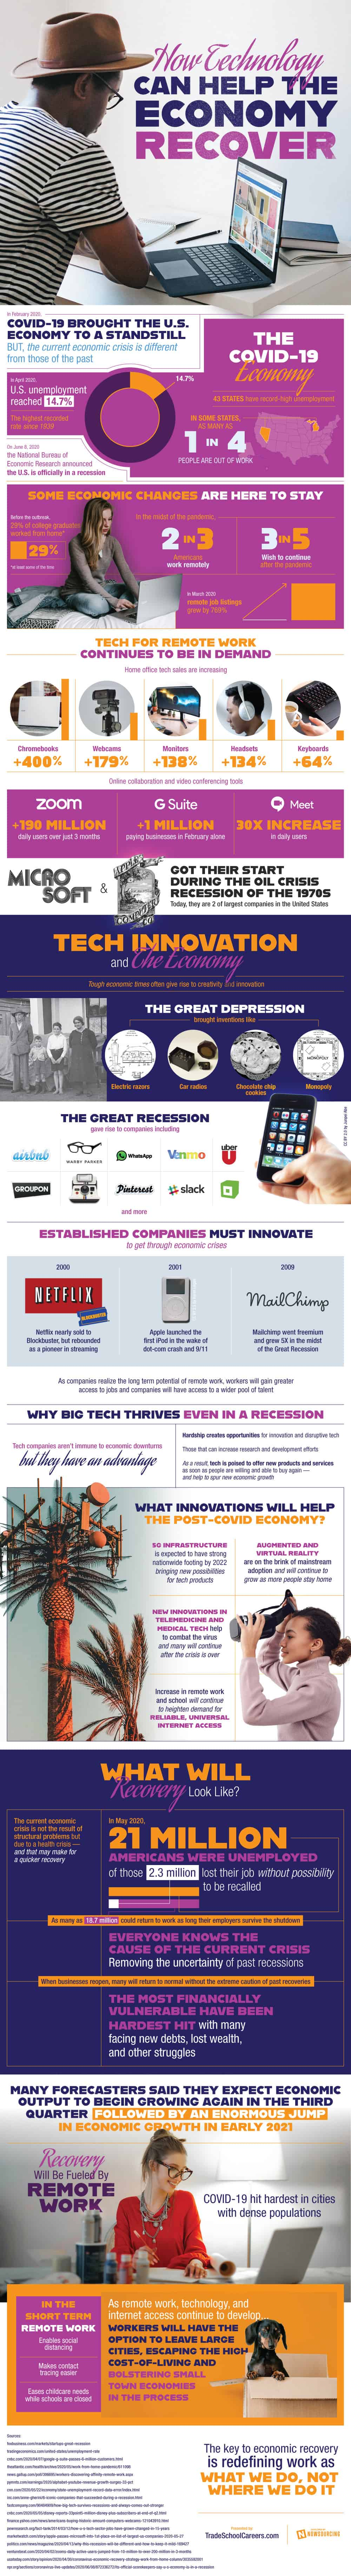 How Tech Can Help the Economy Recover (Infographic)